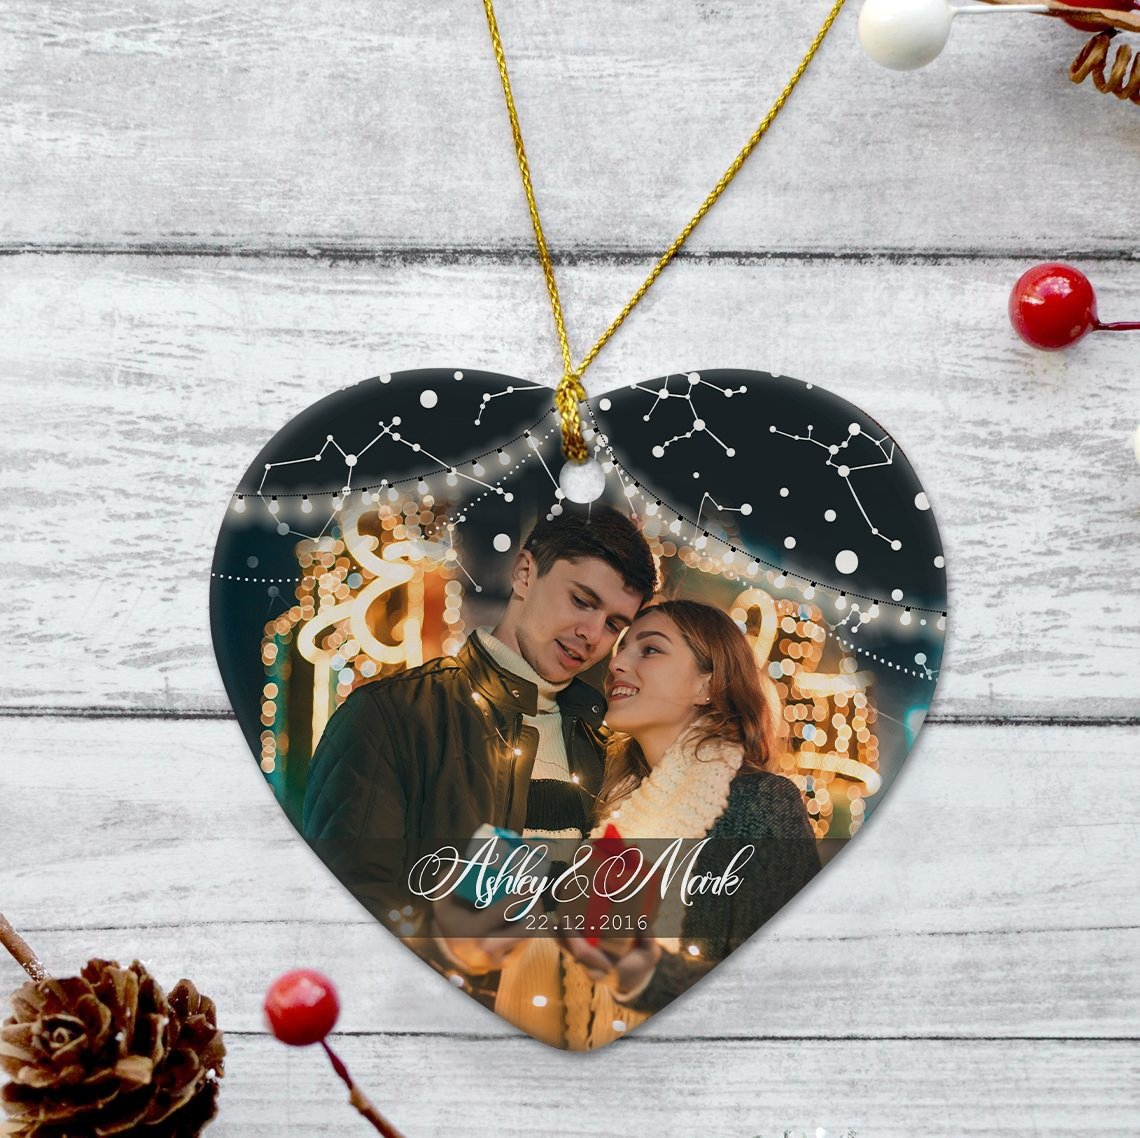 This couple's personalized ornament commemorates the sweetest eternal relationship. This small gift idea is the perfect way for any couple to look back at their favorite memories.